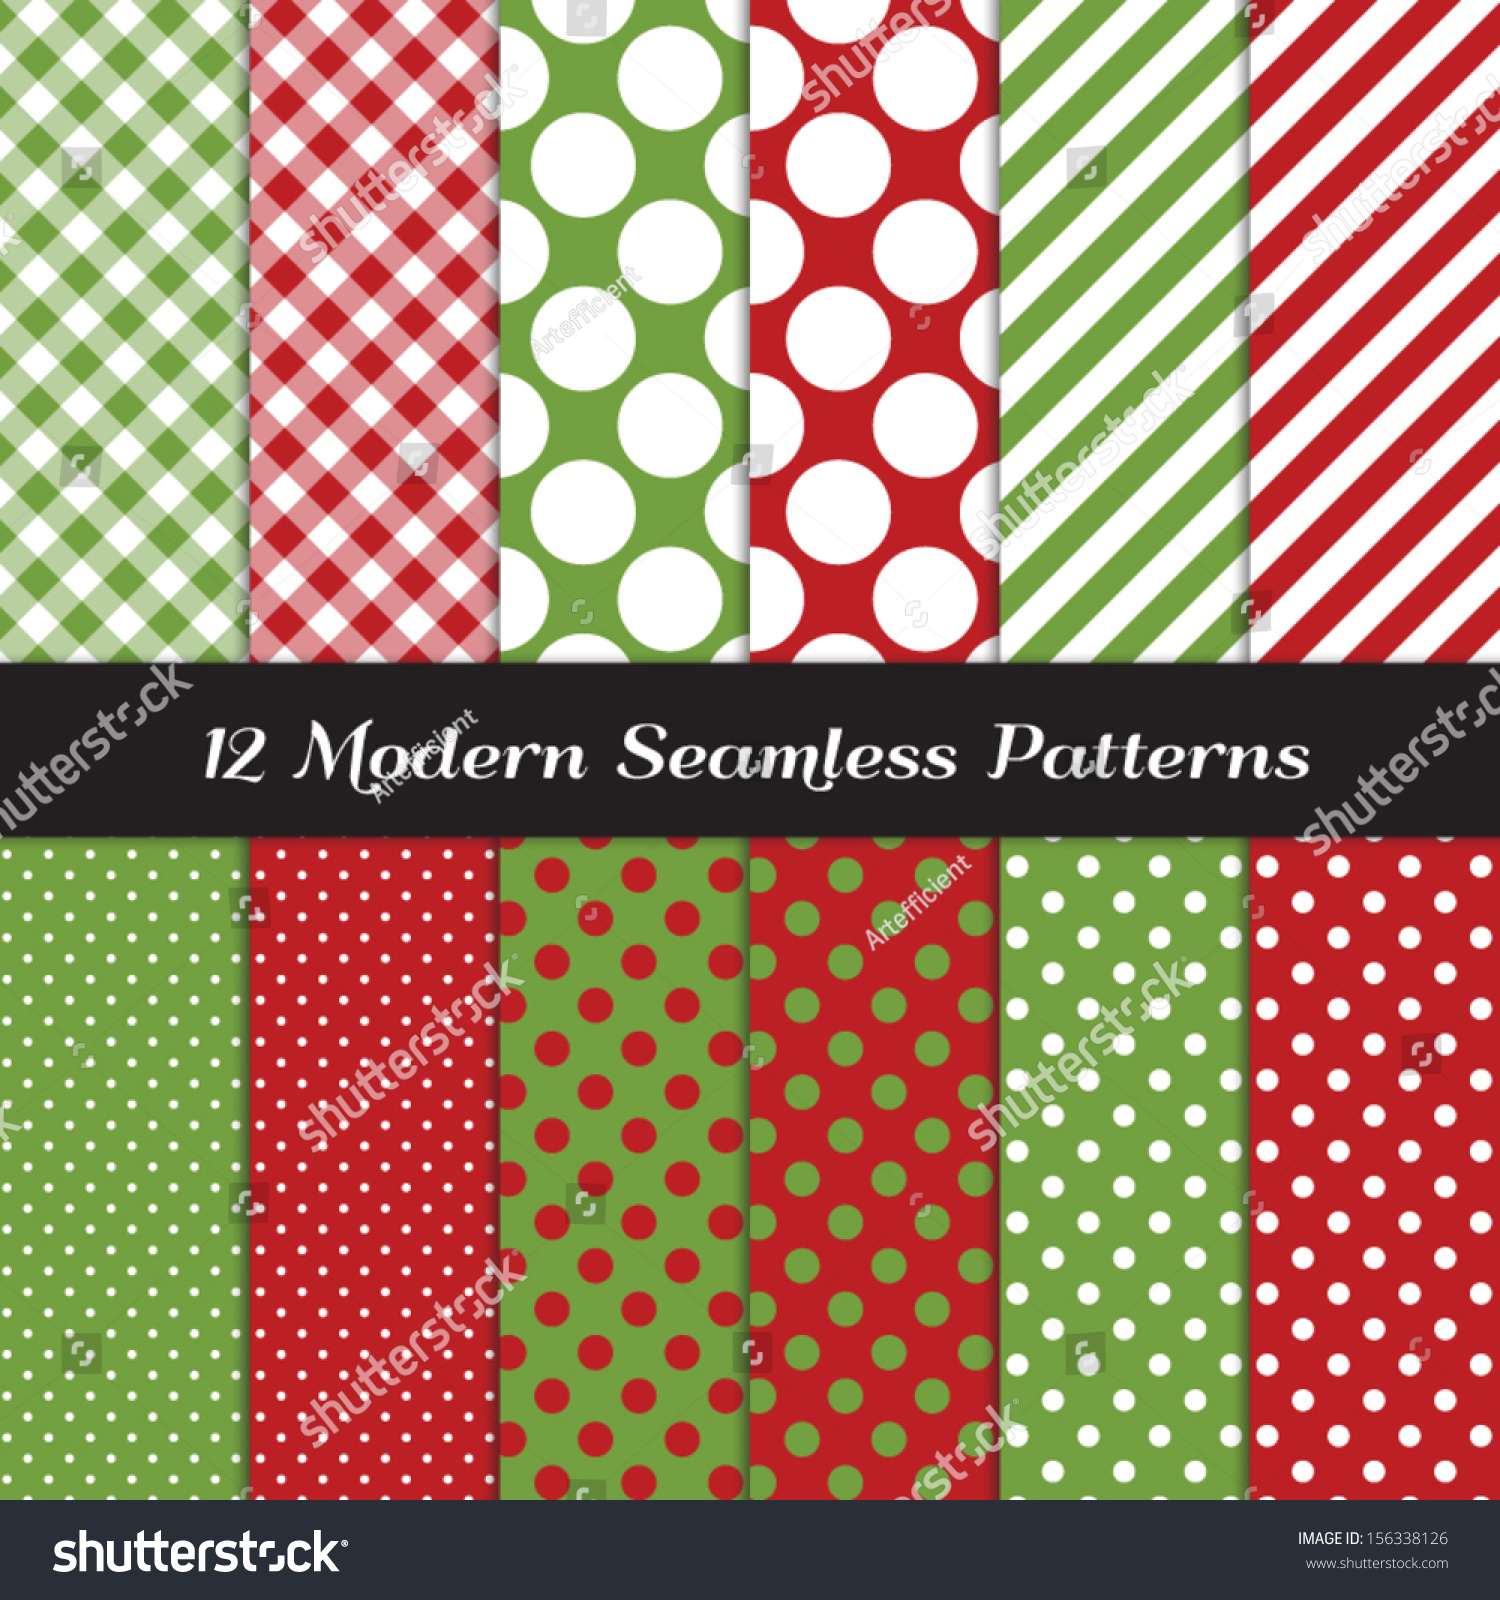 Pics photos merry christmas argyle twitter backgrounds - Classic Christmas Backgrounds Red And Green Jumbo Polka Dot Gingham And Stripes Seamless Patterns